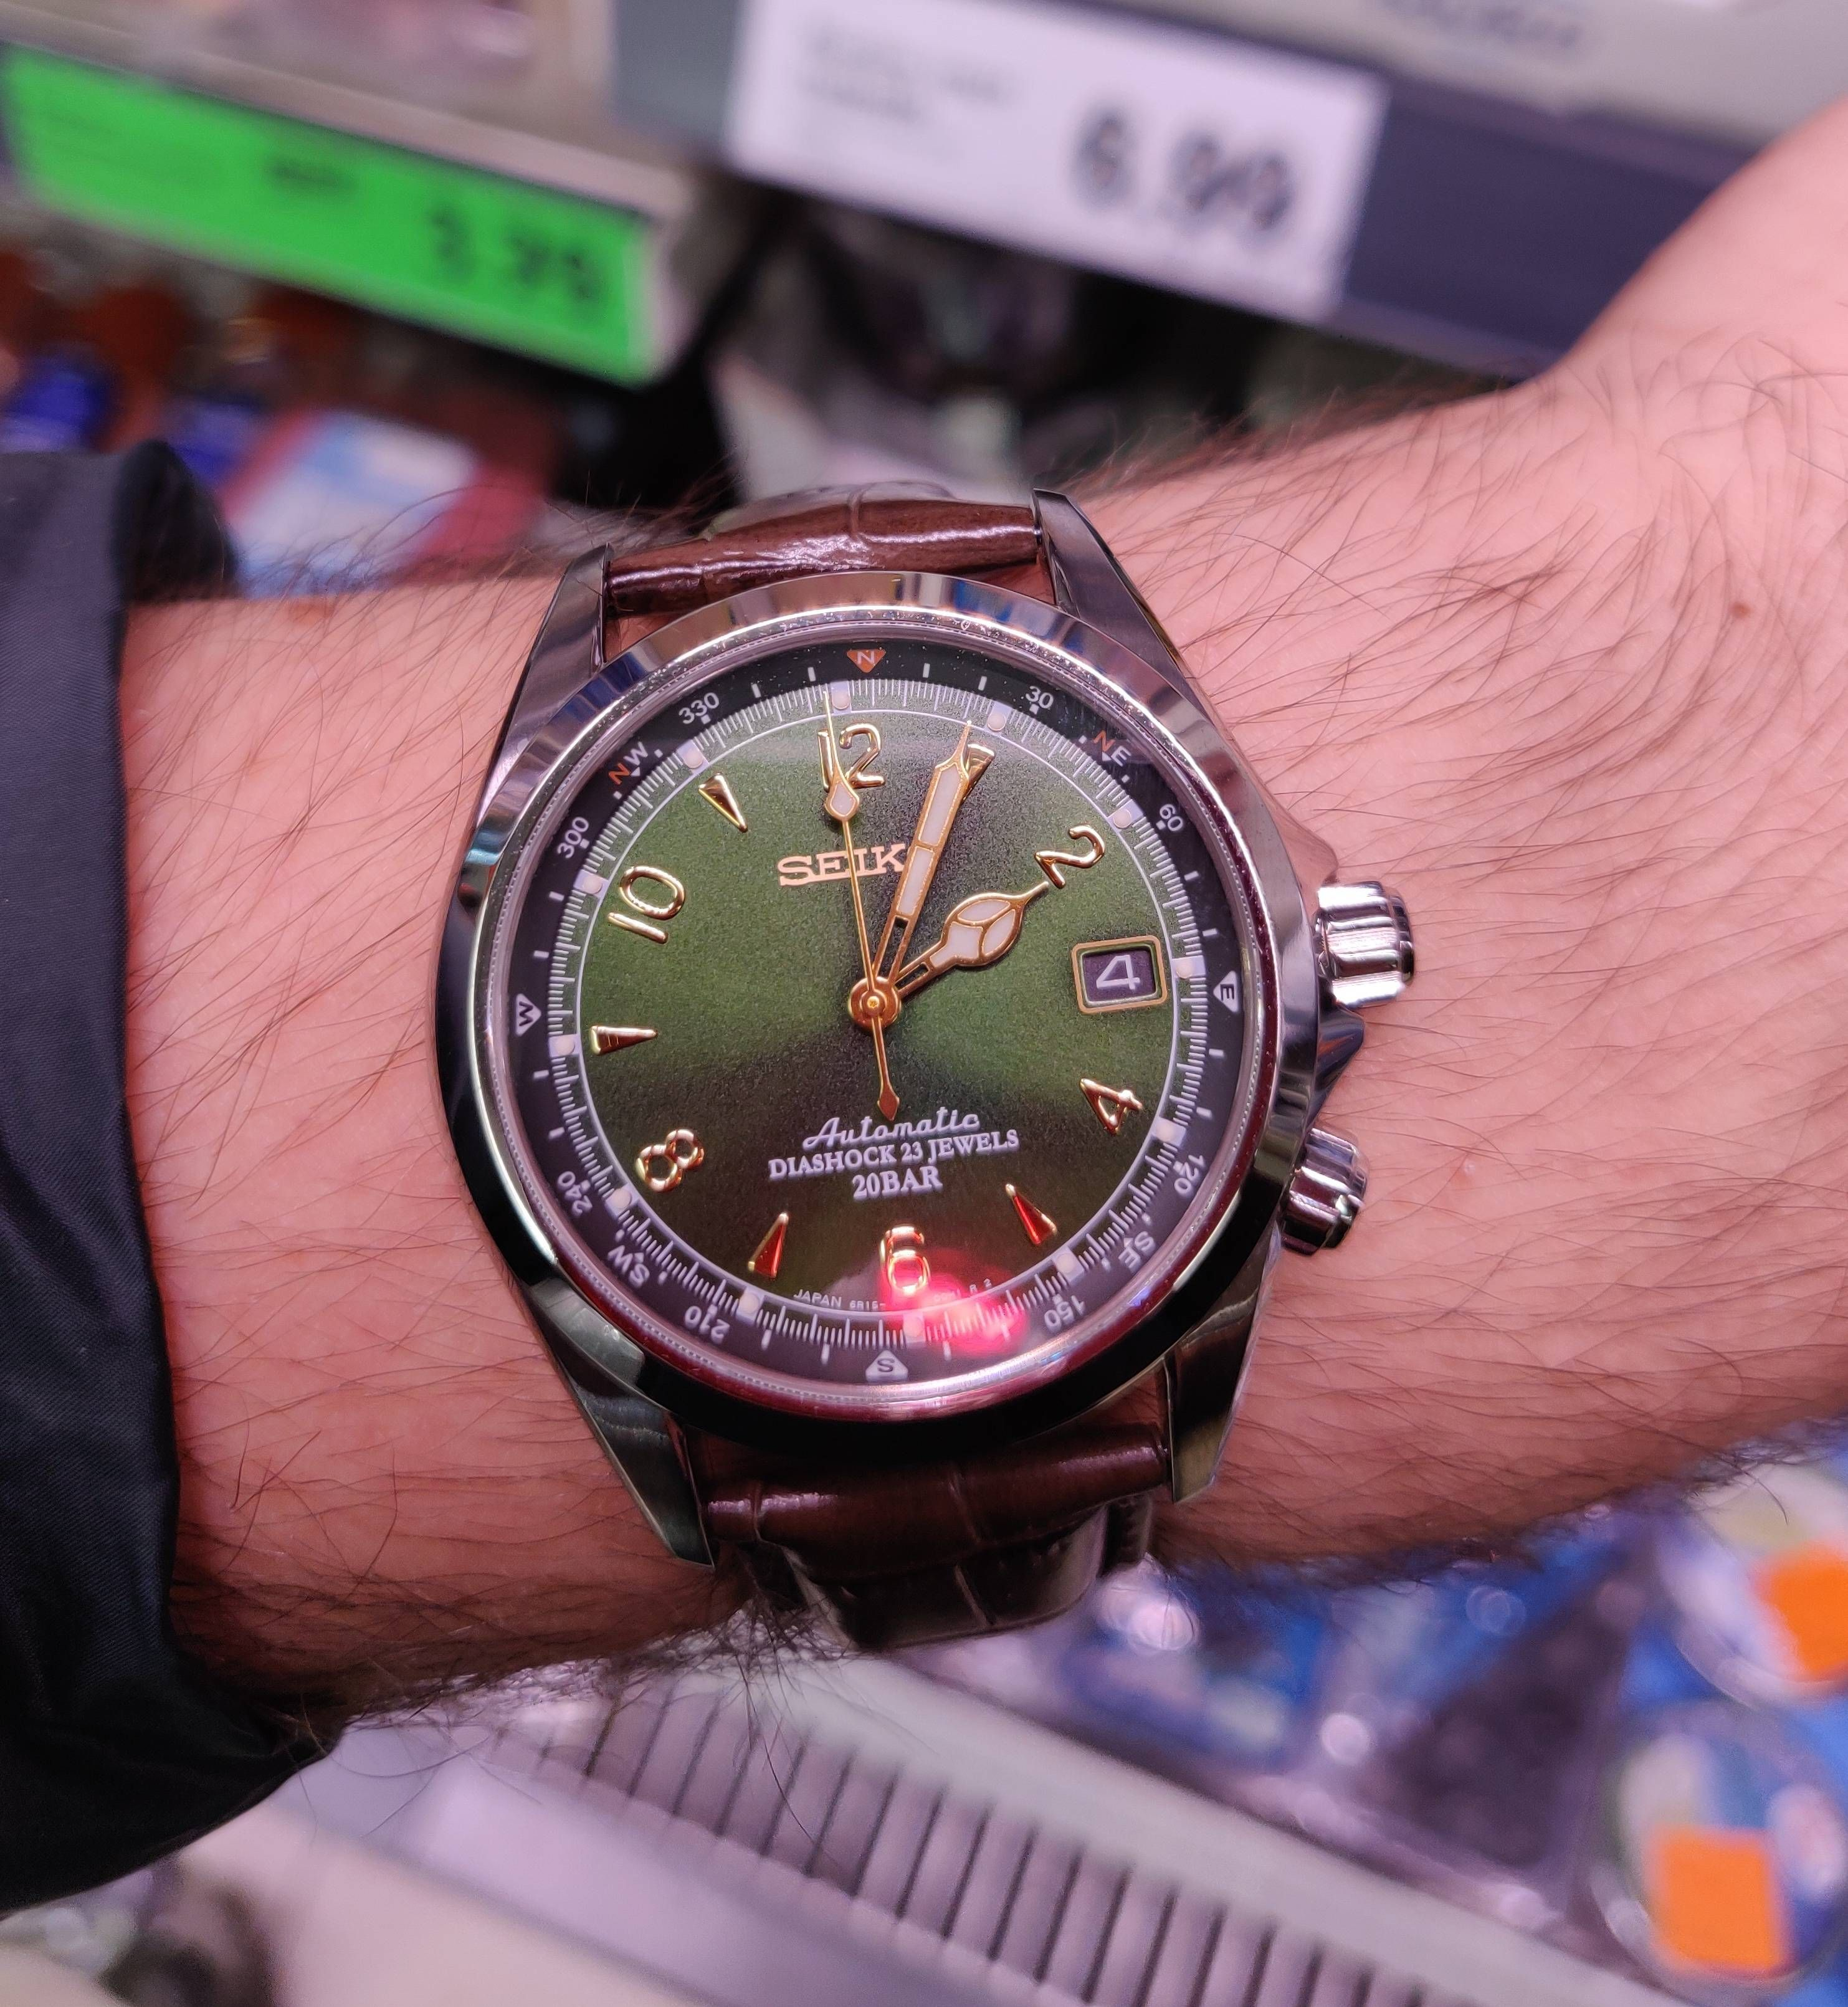 Seiko] The Alpinist - my current holy grail watch has